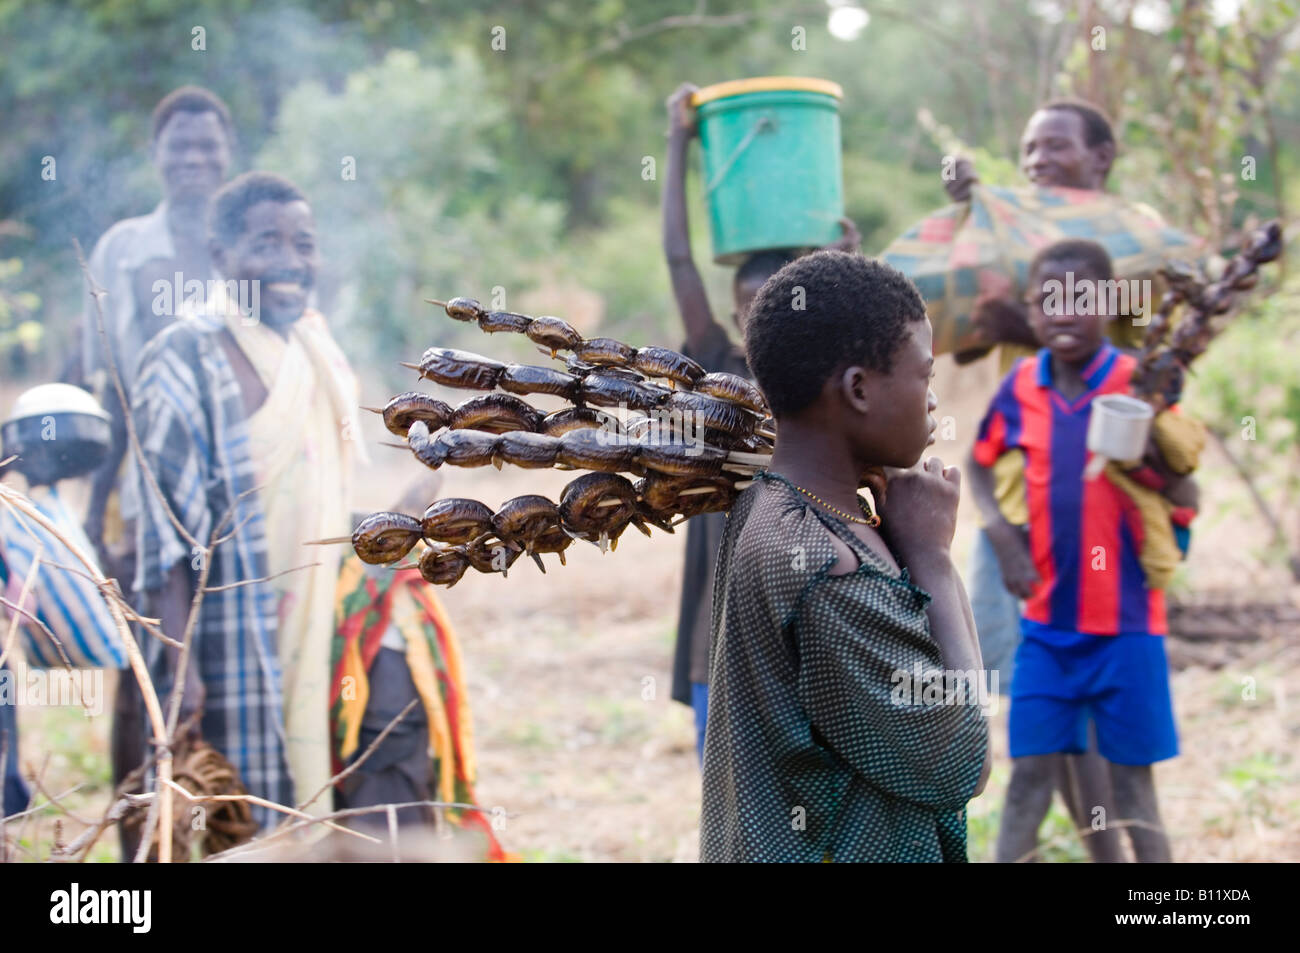 Group of people hunting for food in Niassa Reserve ( Mozambique ) collect catfish on a skewer. - Stock Image